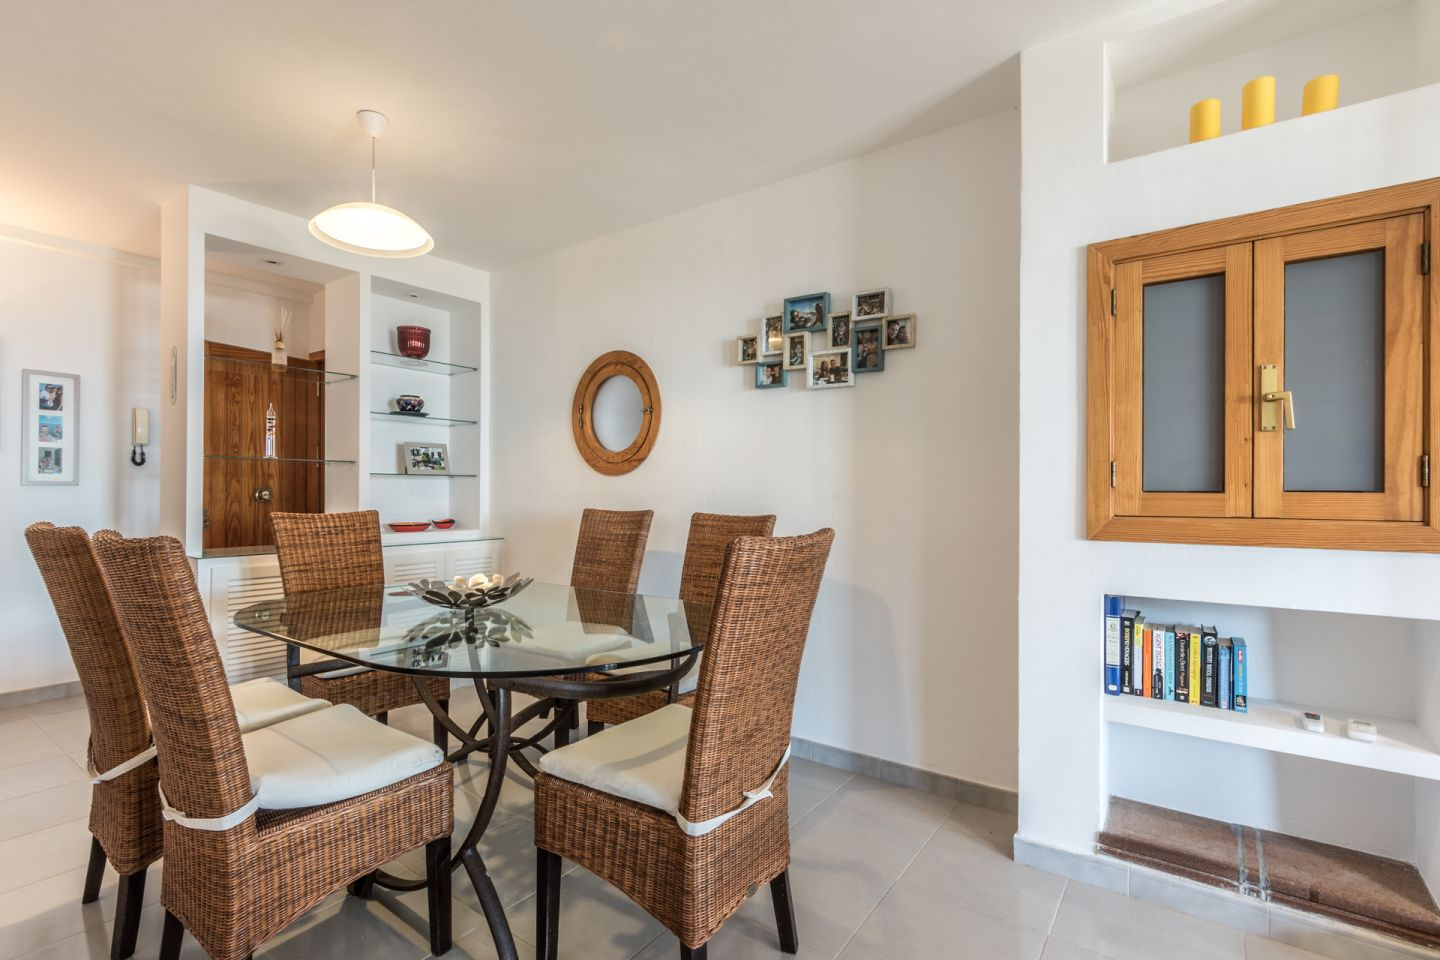 3 Bed Ground Floor For Sale in PUERTO POLLENSA 8